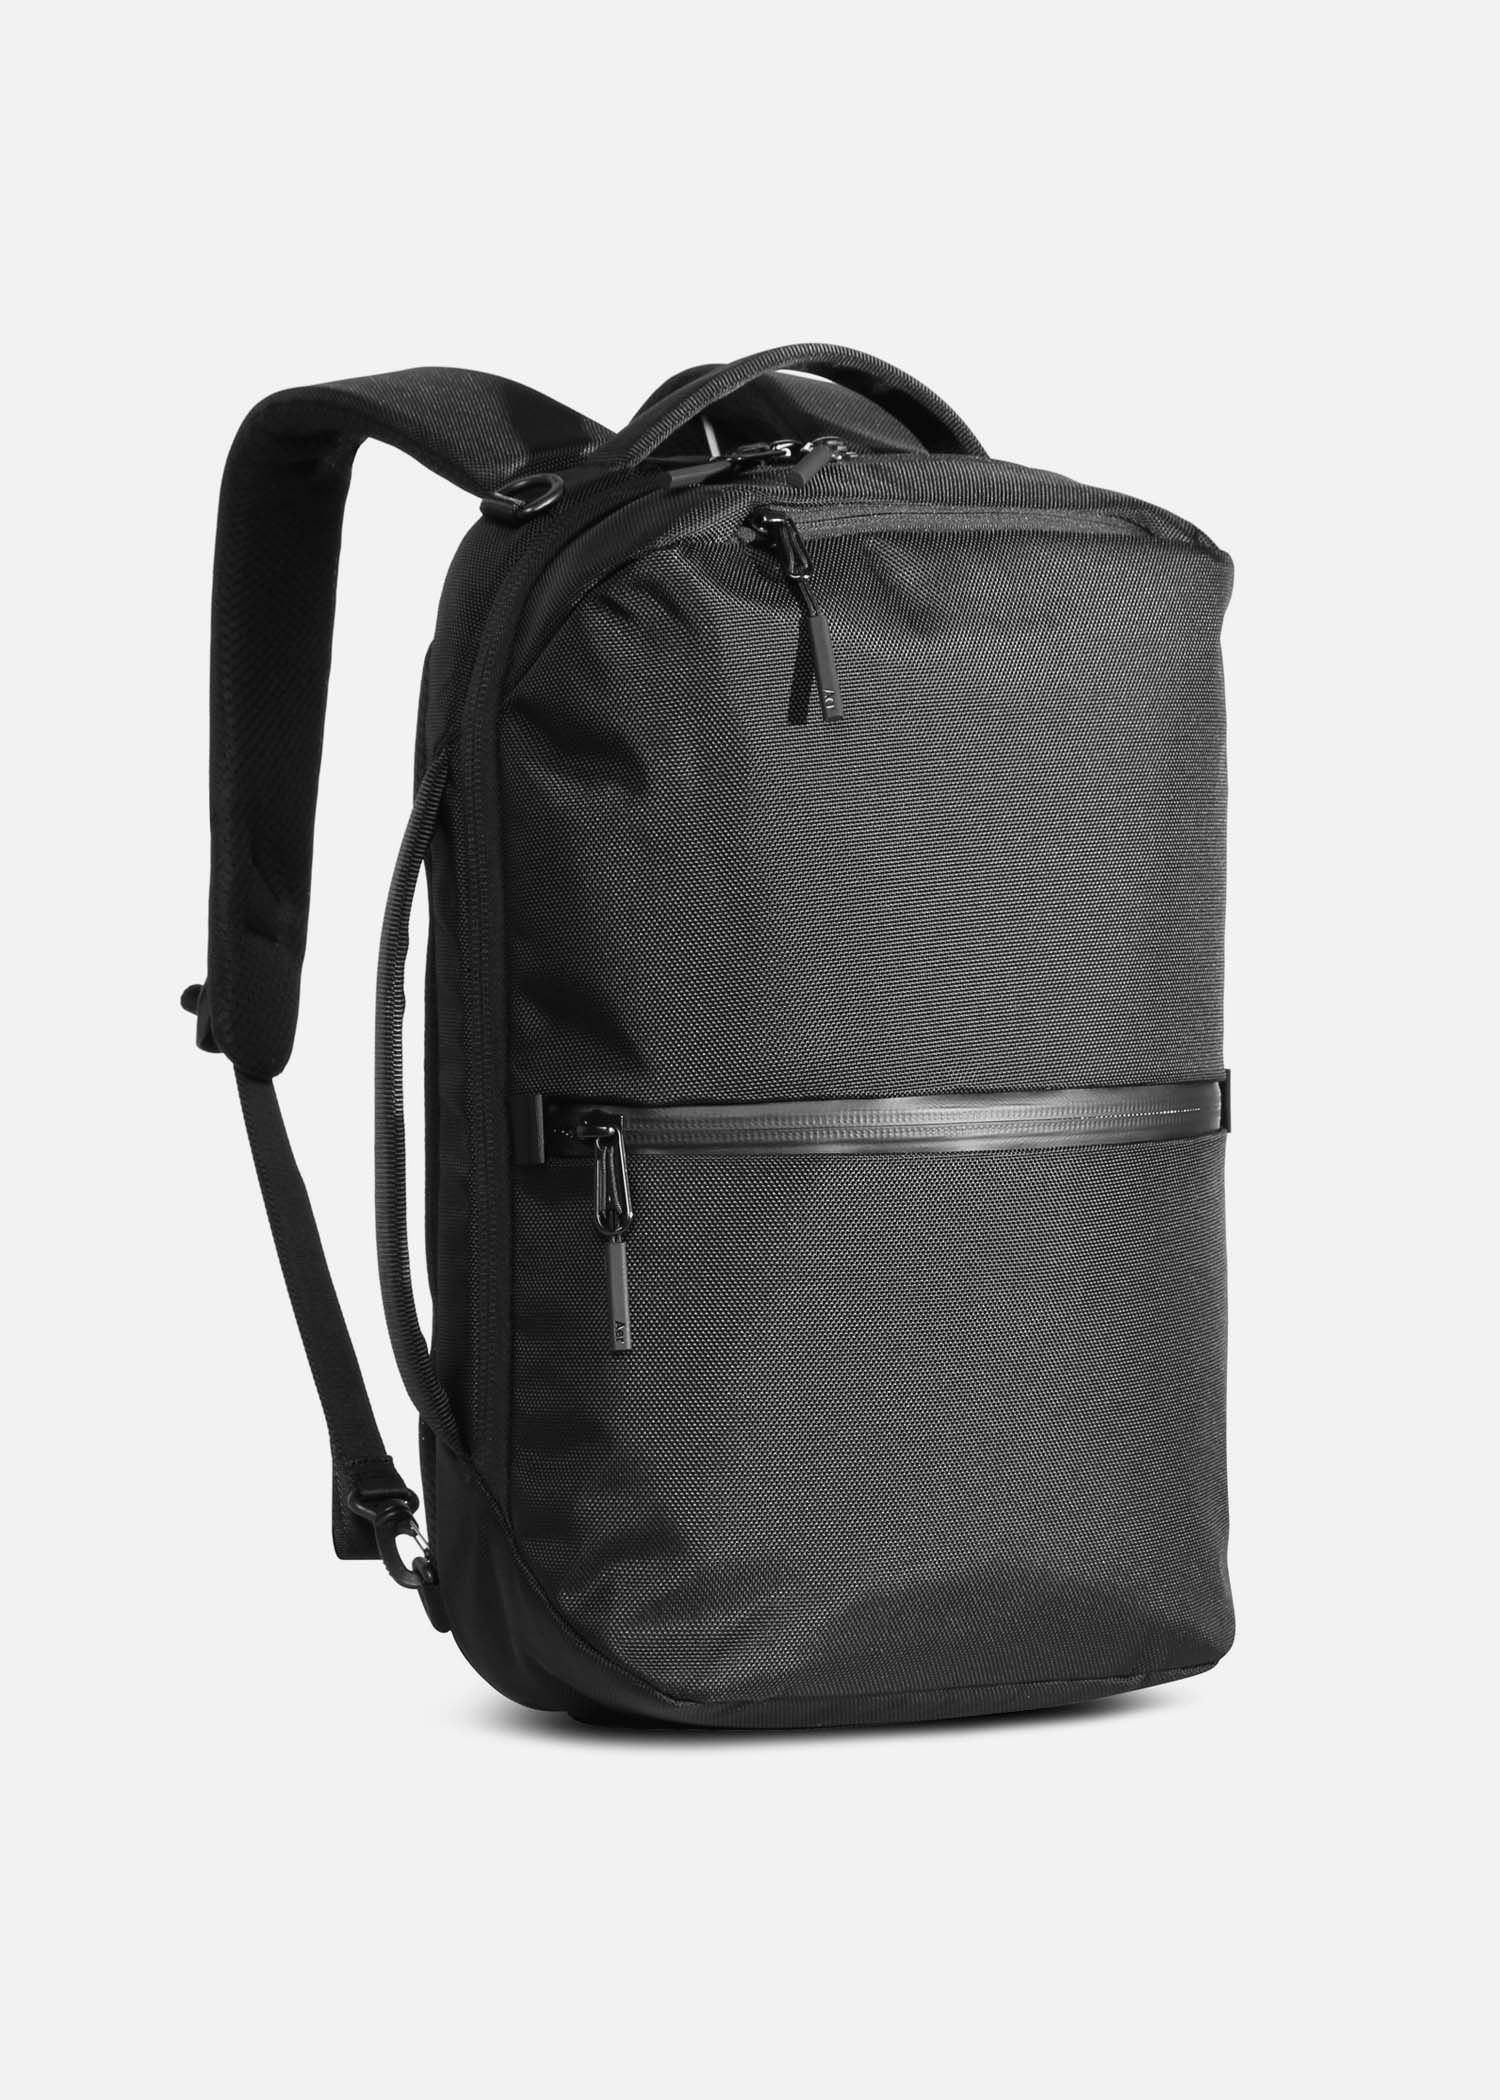 1fe246f25ae8 Aer Fit Pack Best Gym Work Pack Backpack